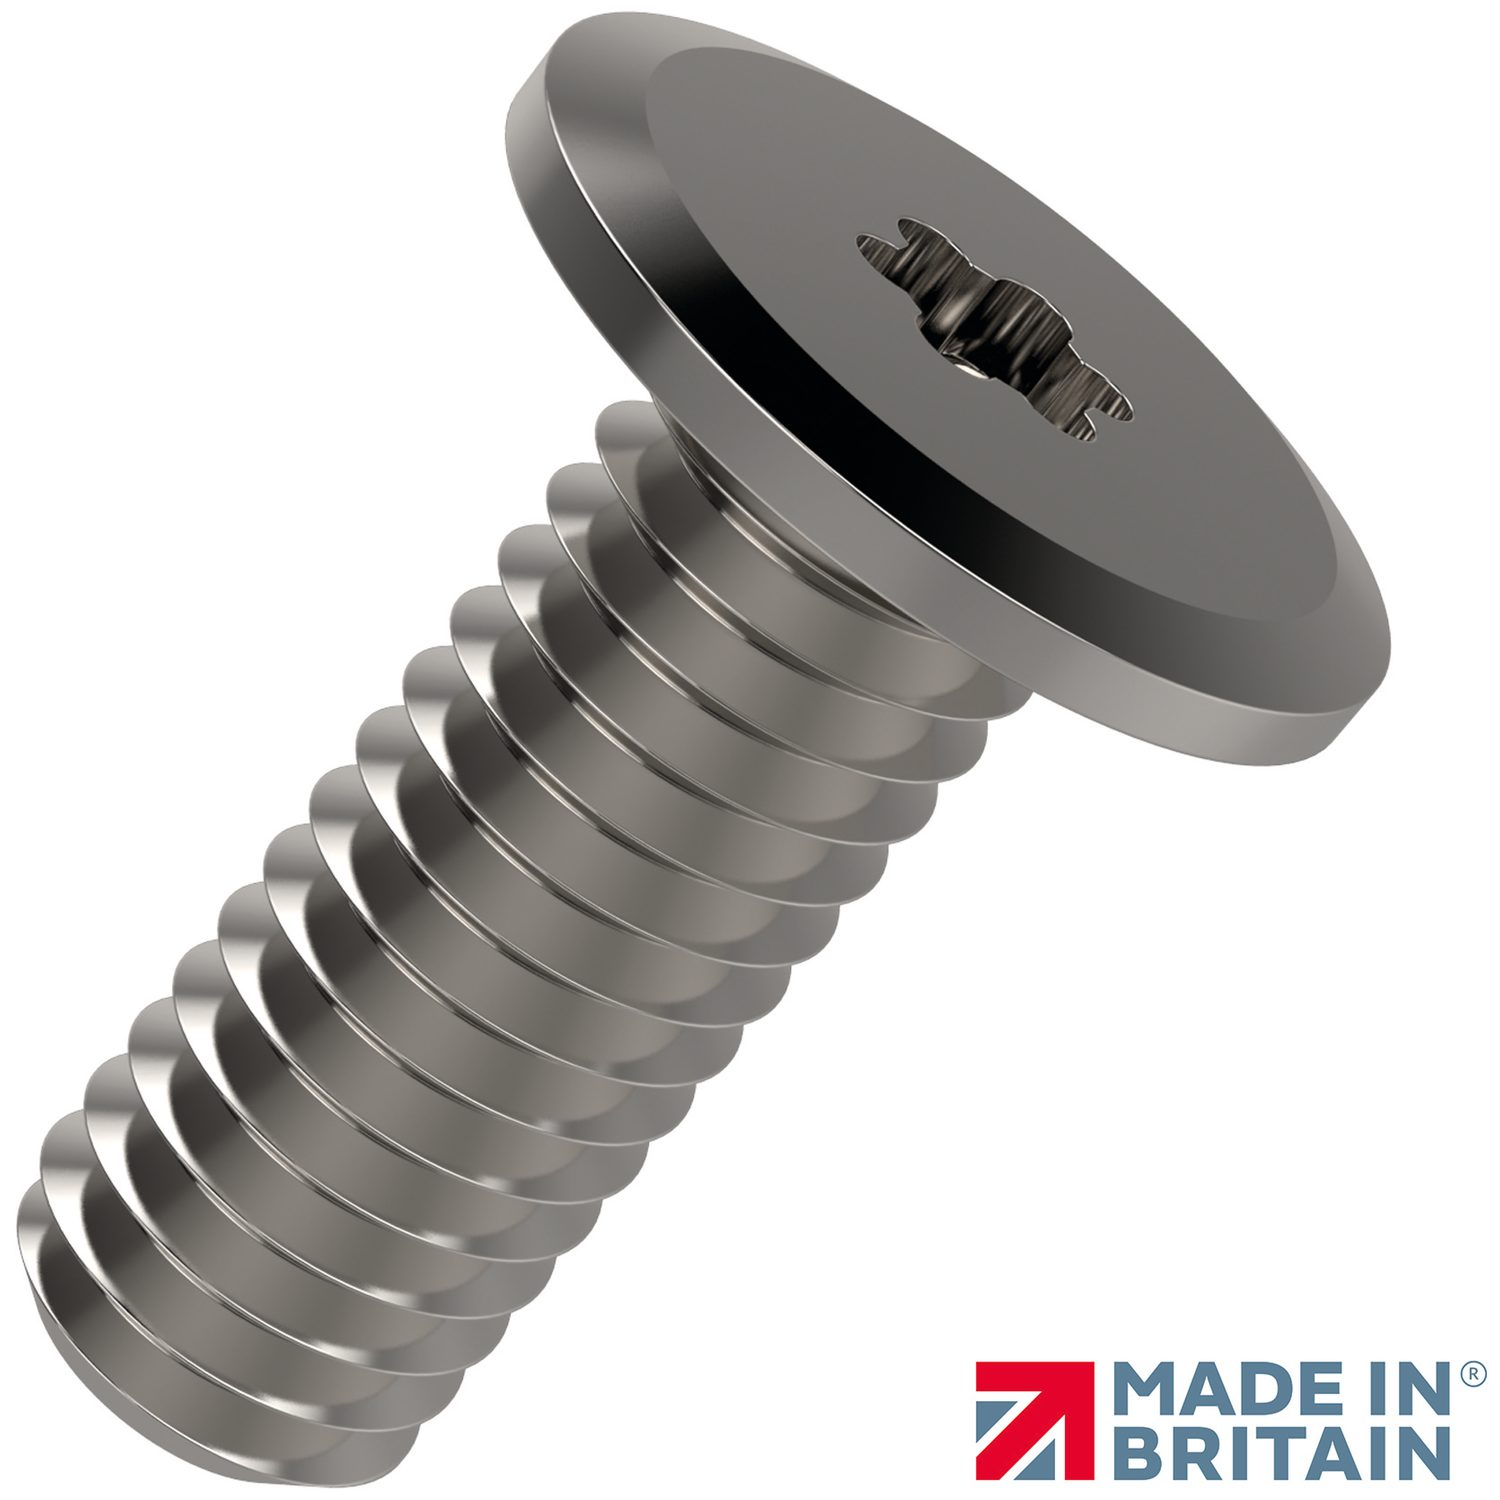 P0209.A2 - Ultra Low Head Cap Screws